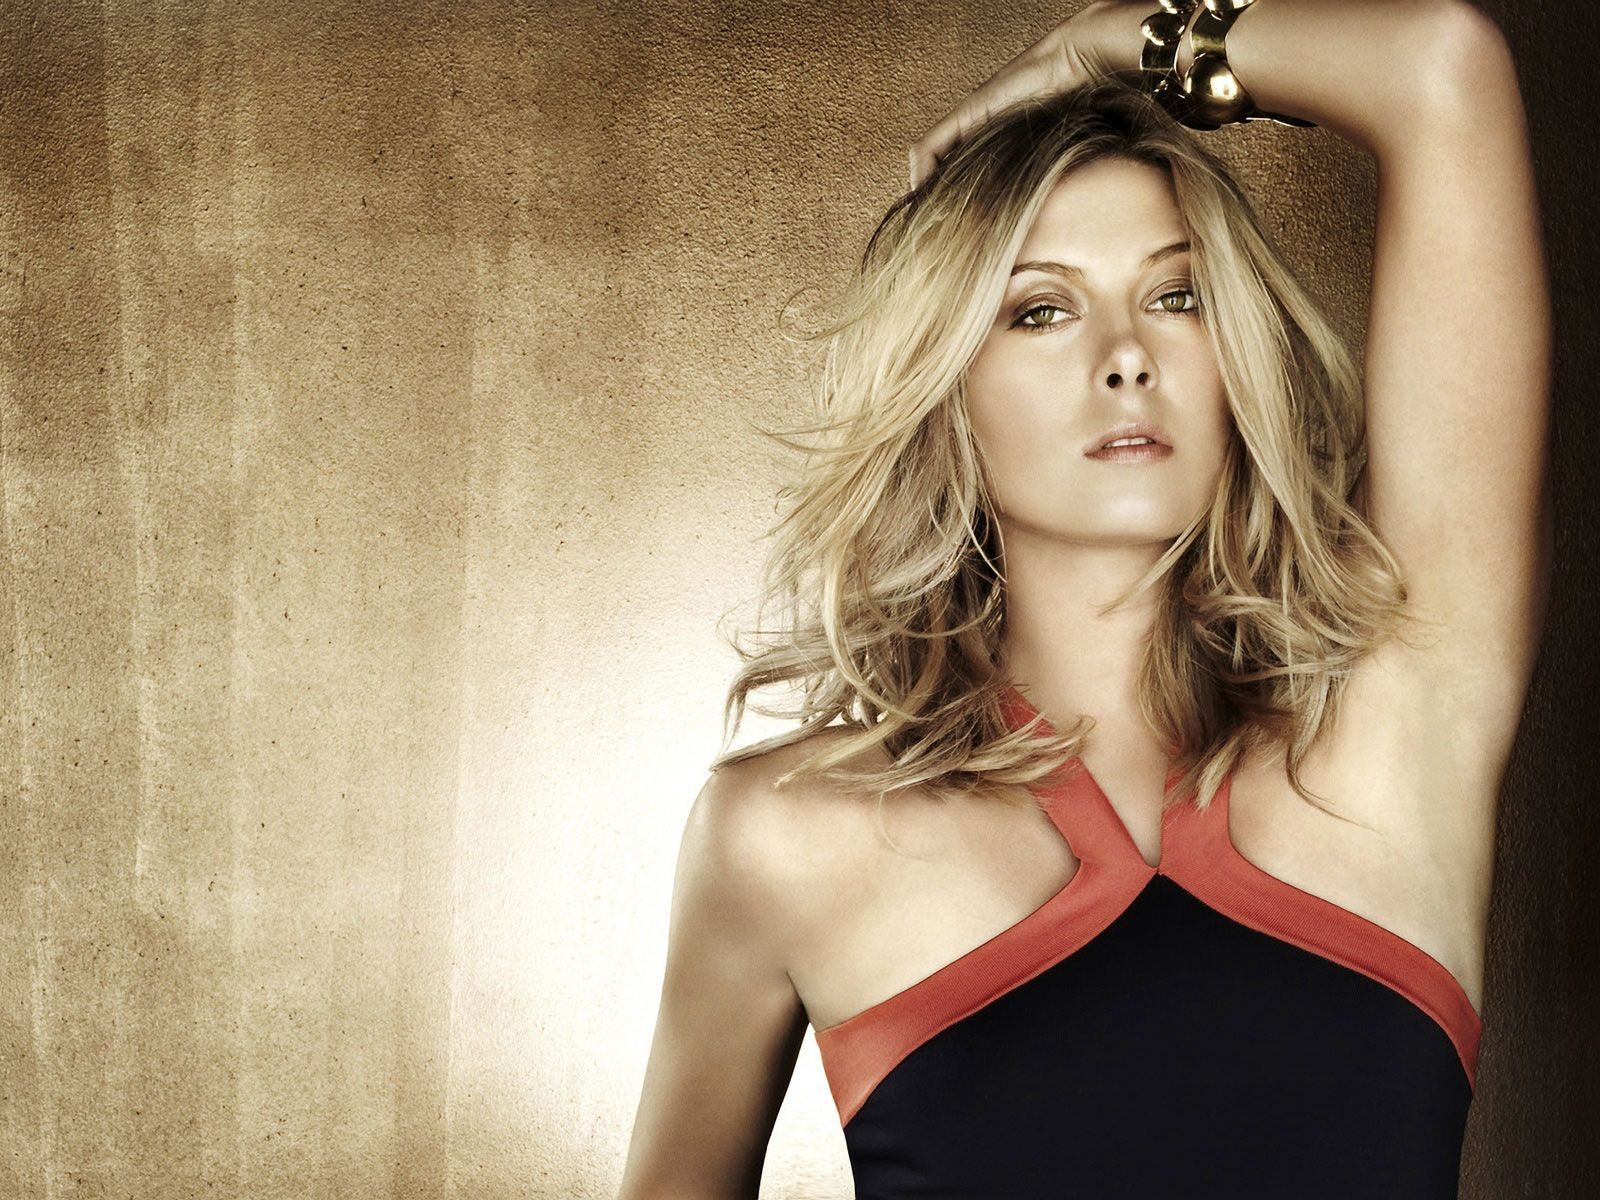 maria sharapova hot | maria sharapova 10 hd wallpaper #400 wallpaper